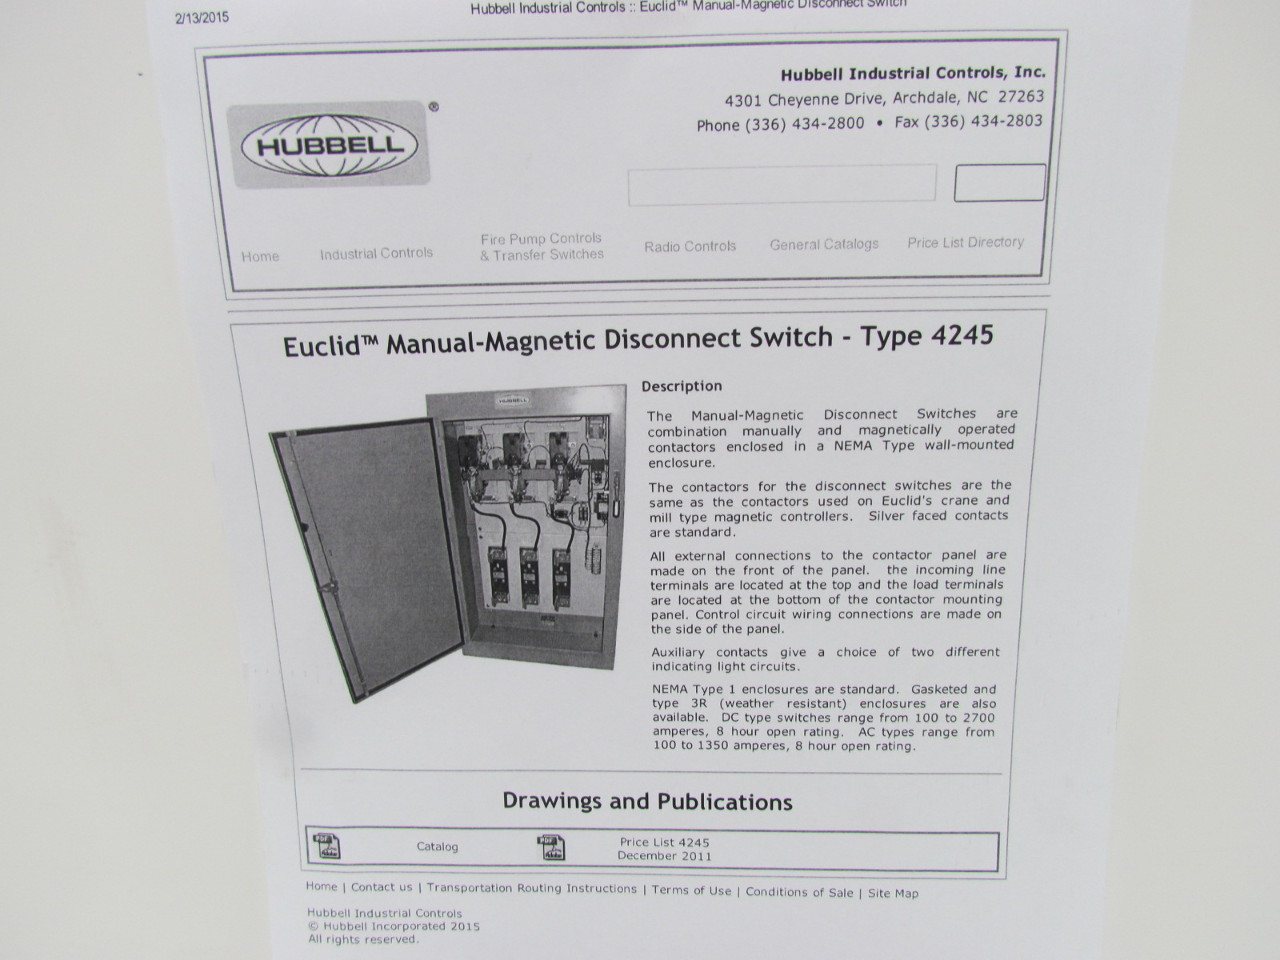 hubbell b euclid manual magnetic disconnect switch type hubbell b 74971 001 euclid manual magnetic disconnect switch type 4245 sz 5